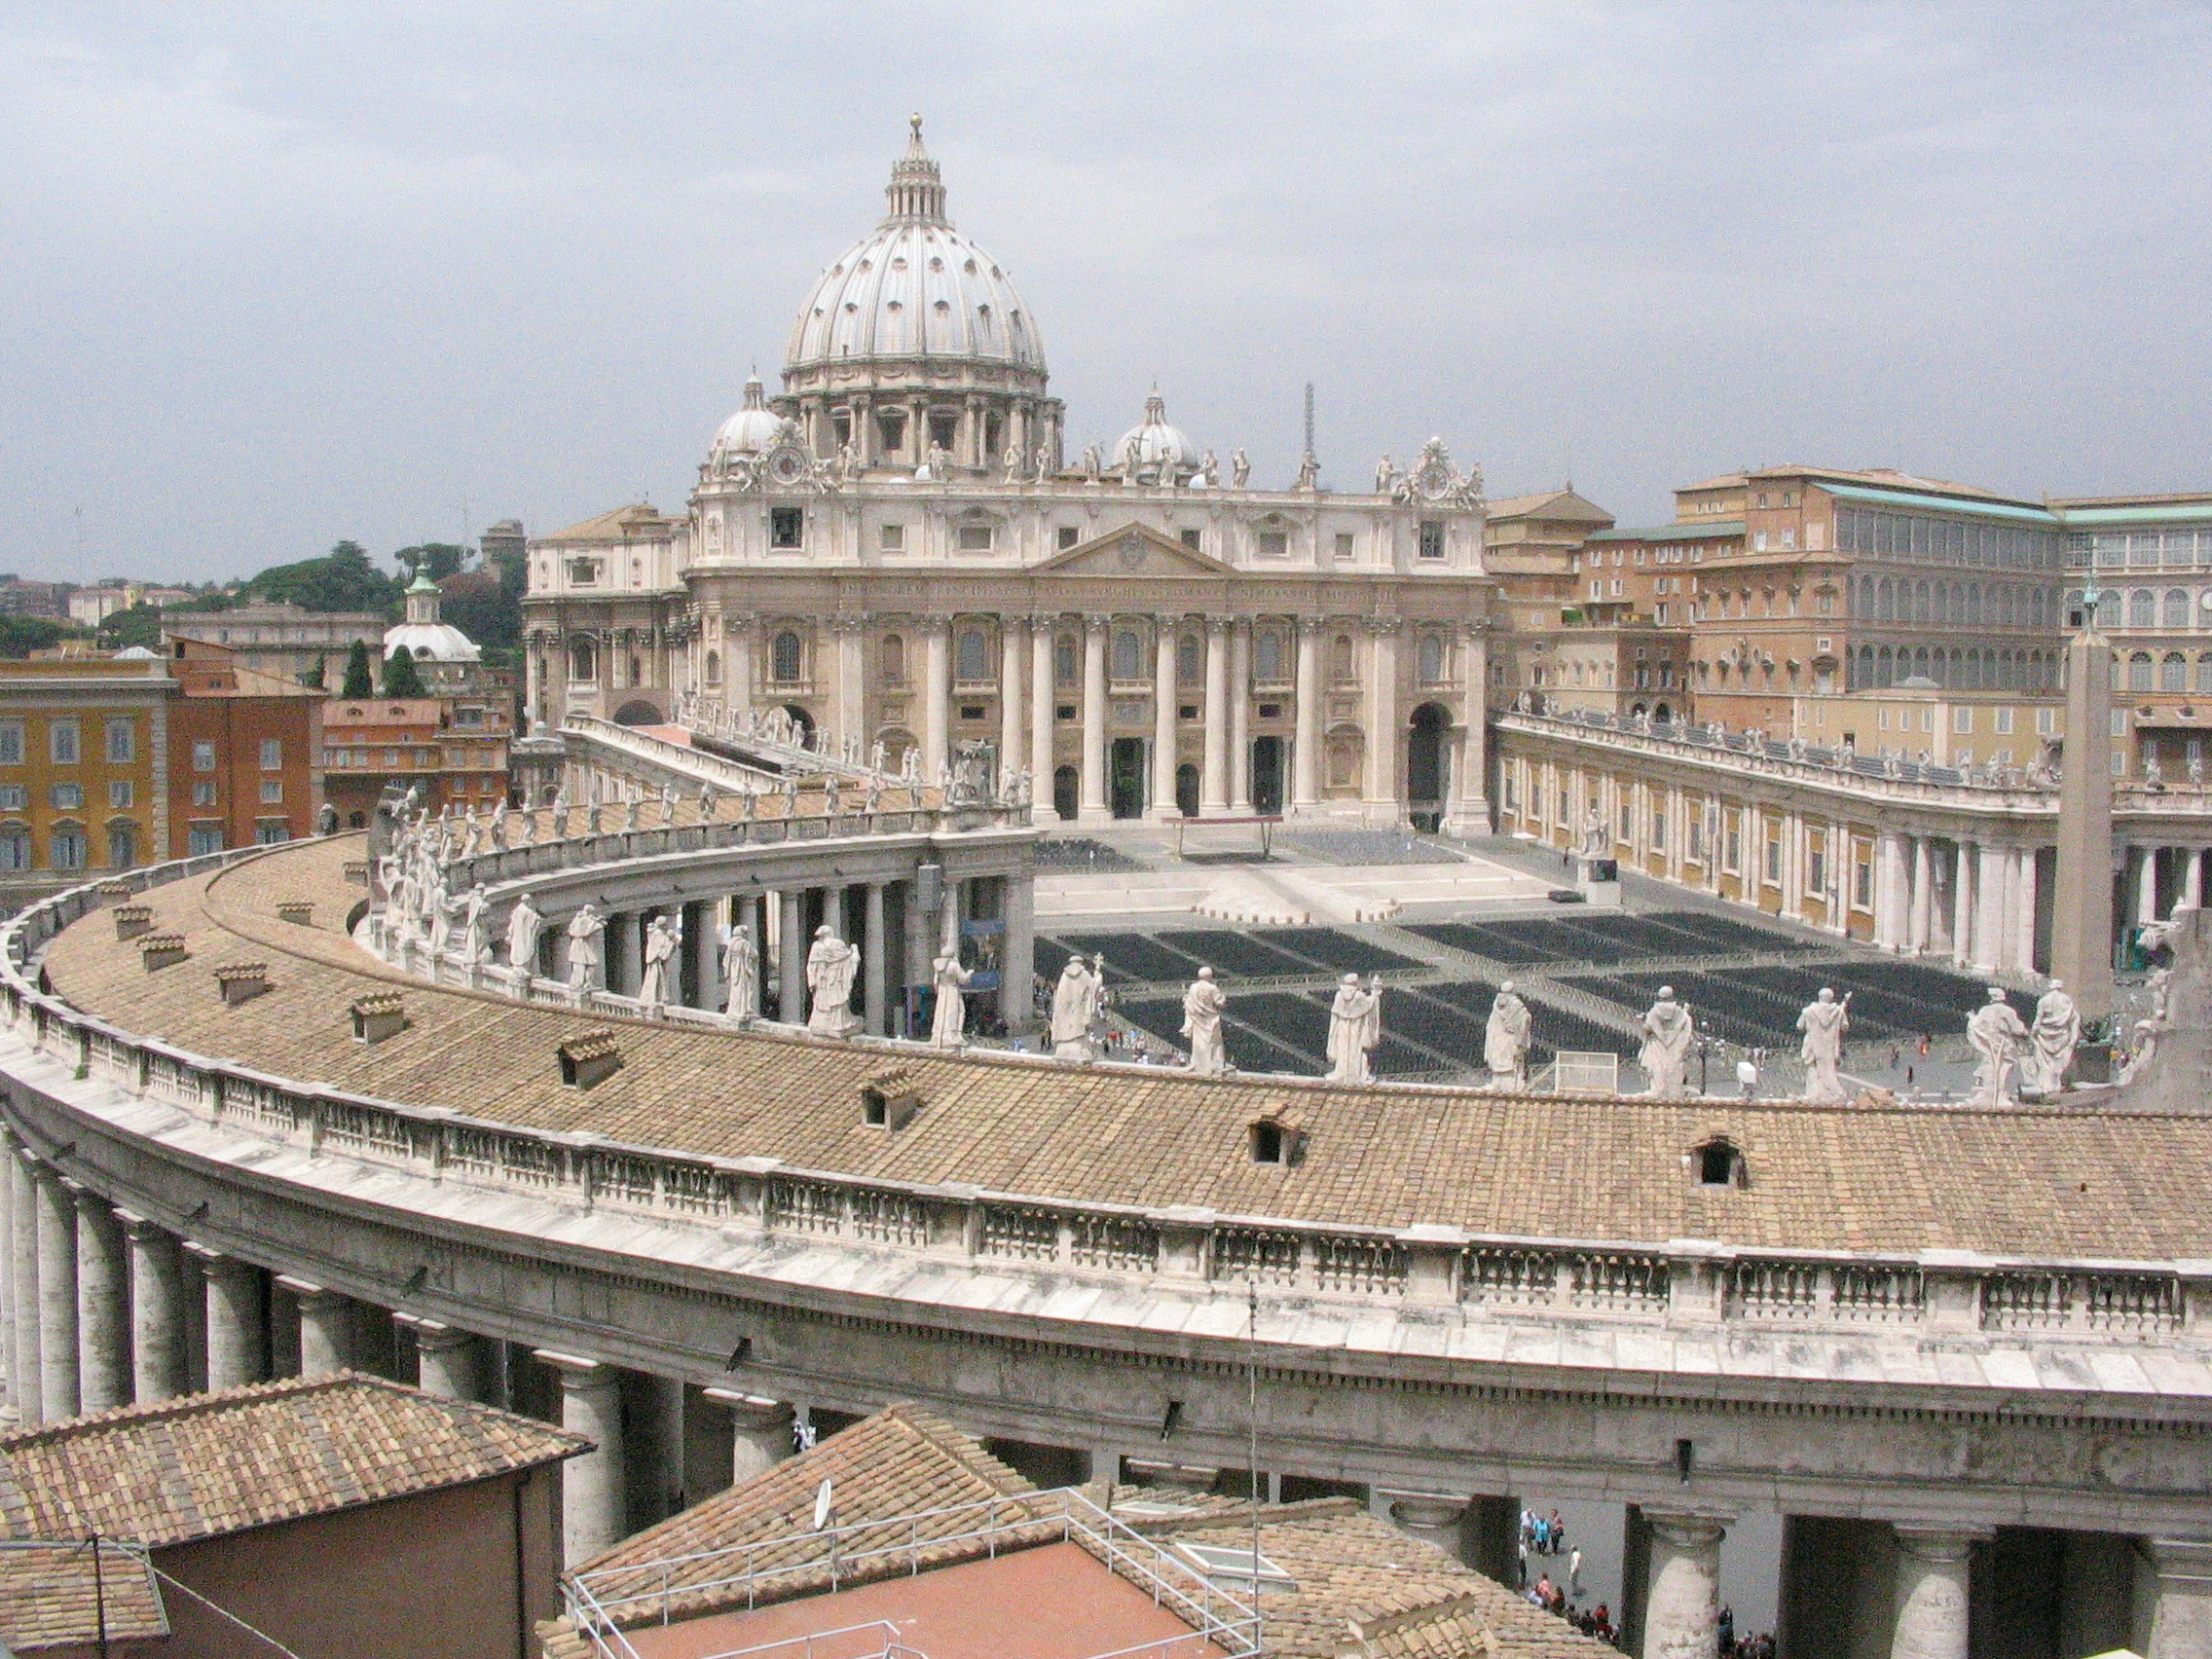 http://upload.wikimedia.org/wikipedia/commons/1/12/View_of_saint_Peter_basilica_from_a_roof.jpg